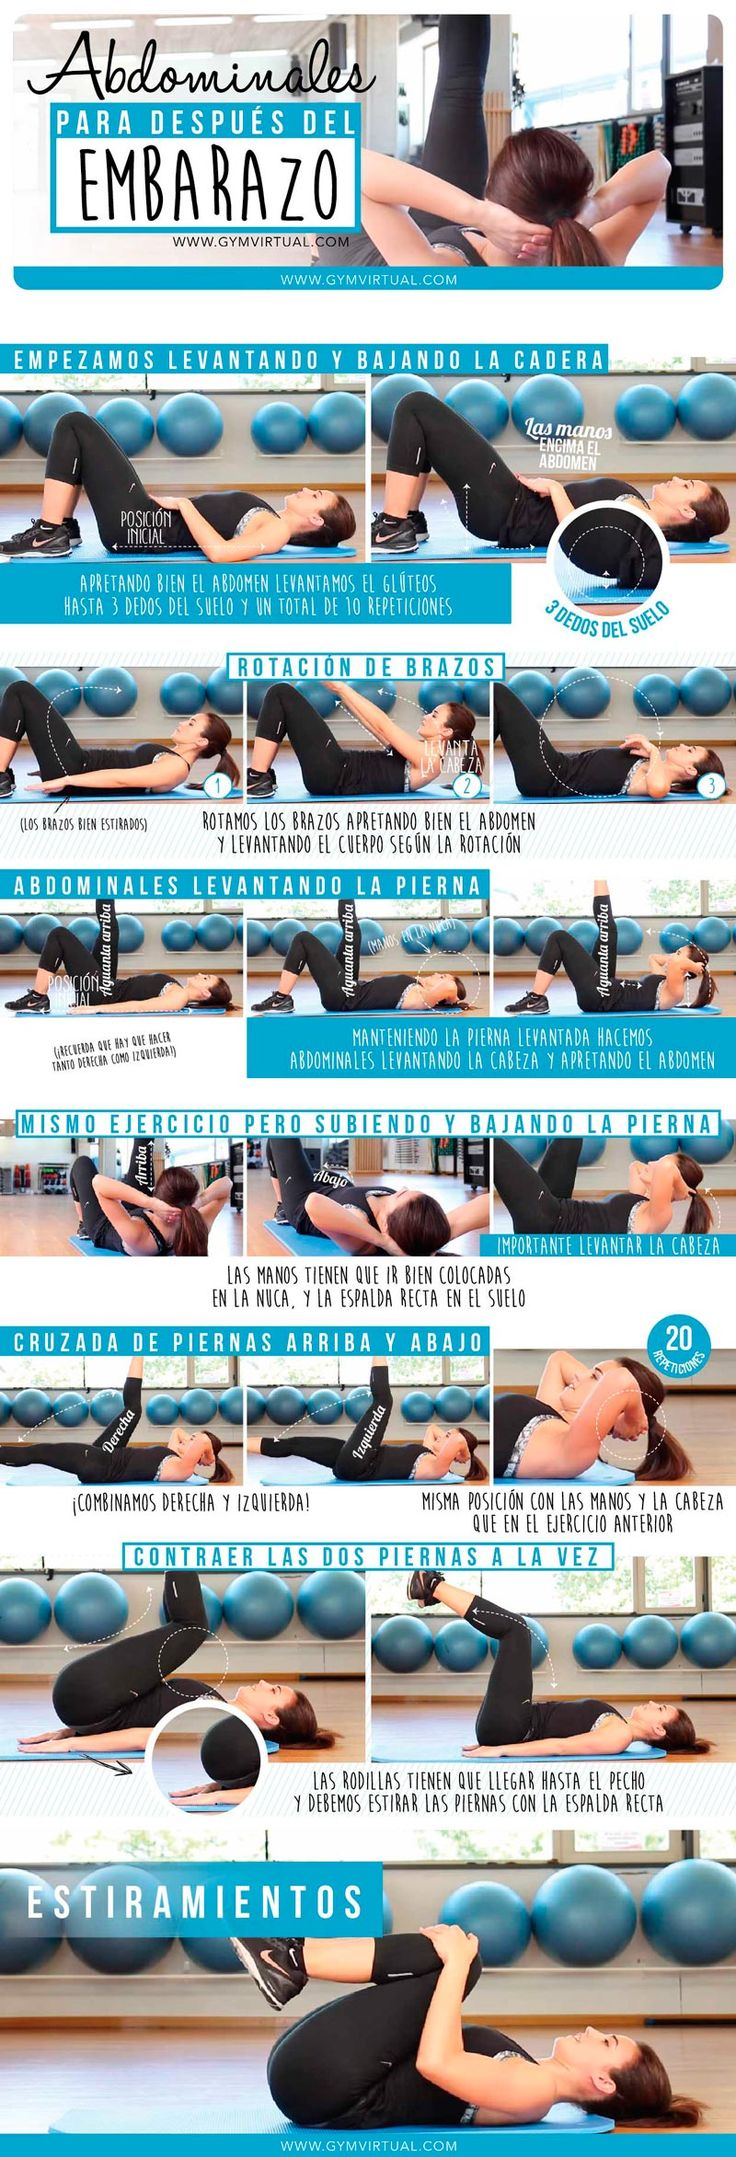 Rutina de abdominales post embarazo paso a paso | GYM VIRTUAL